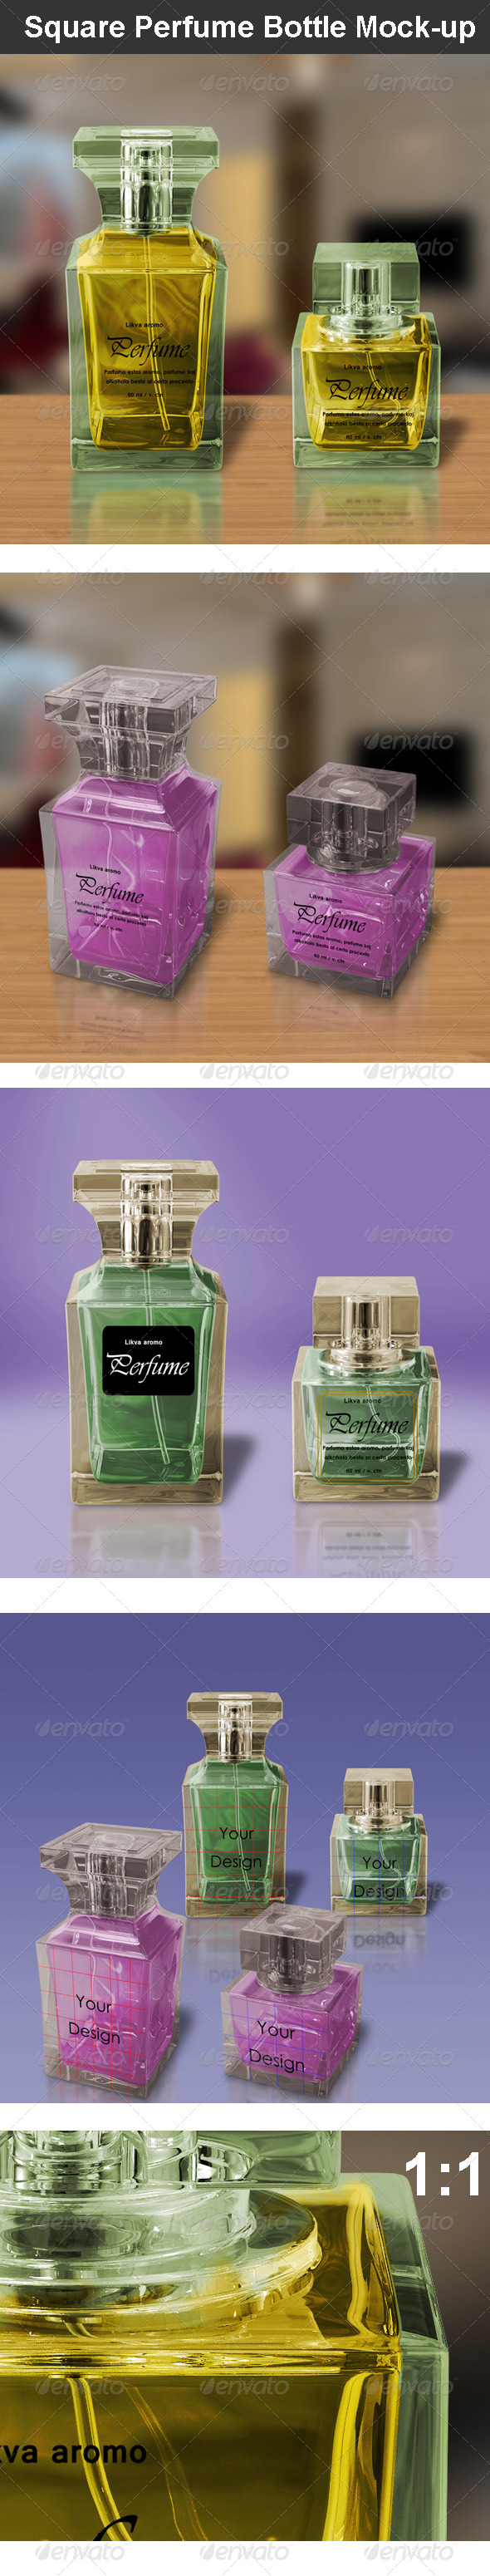 Square Perfume Bottle Mock-up - Beauty Packaging